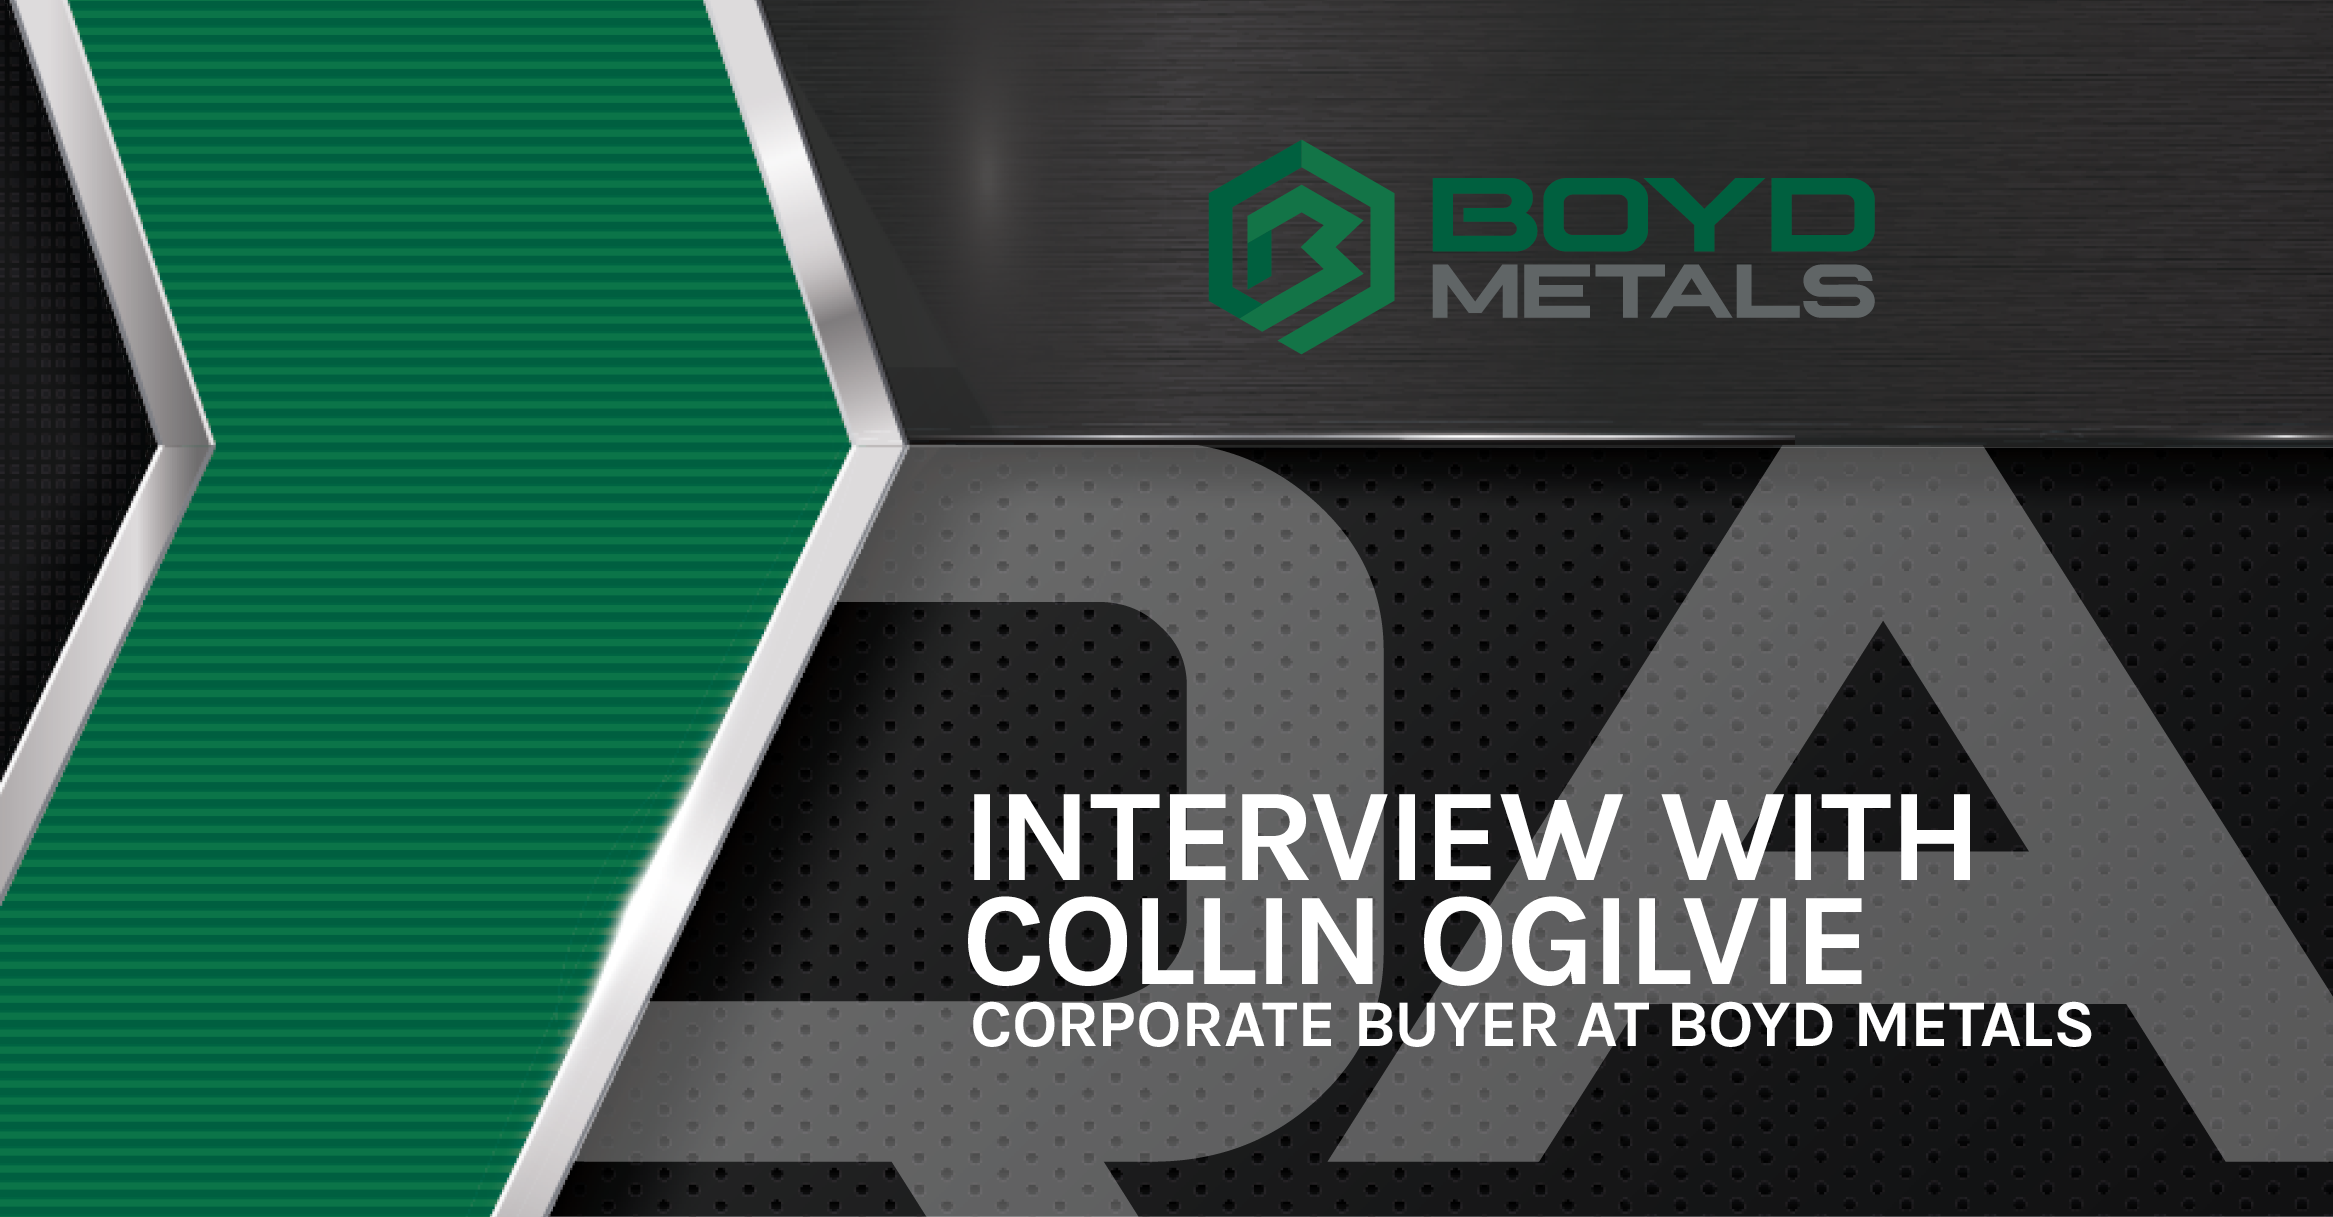 An Interview with Collin Ogilvie: Corporate Buyer at Boyd Metals